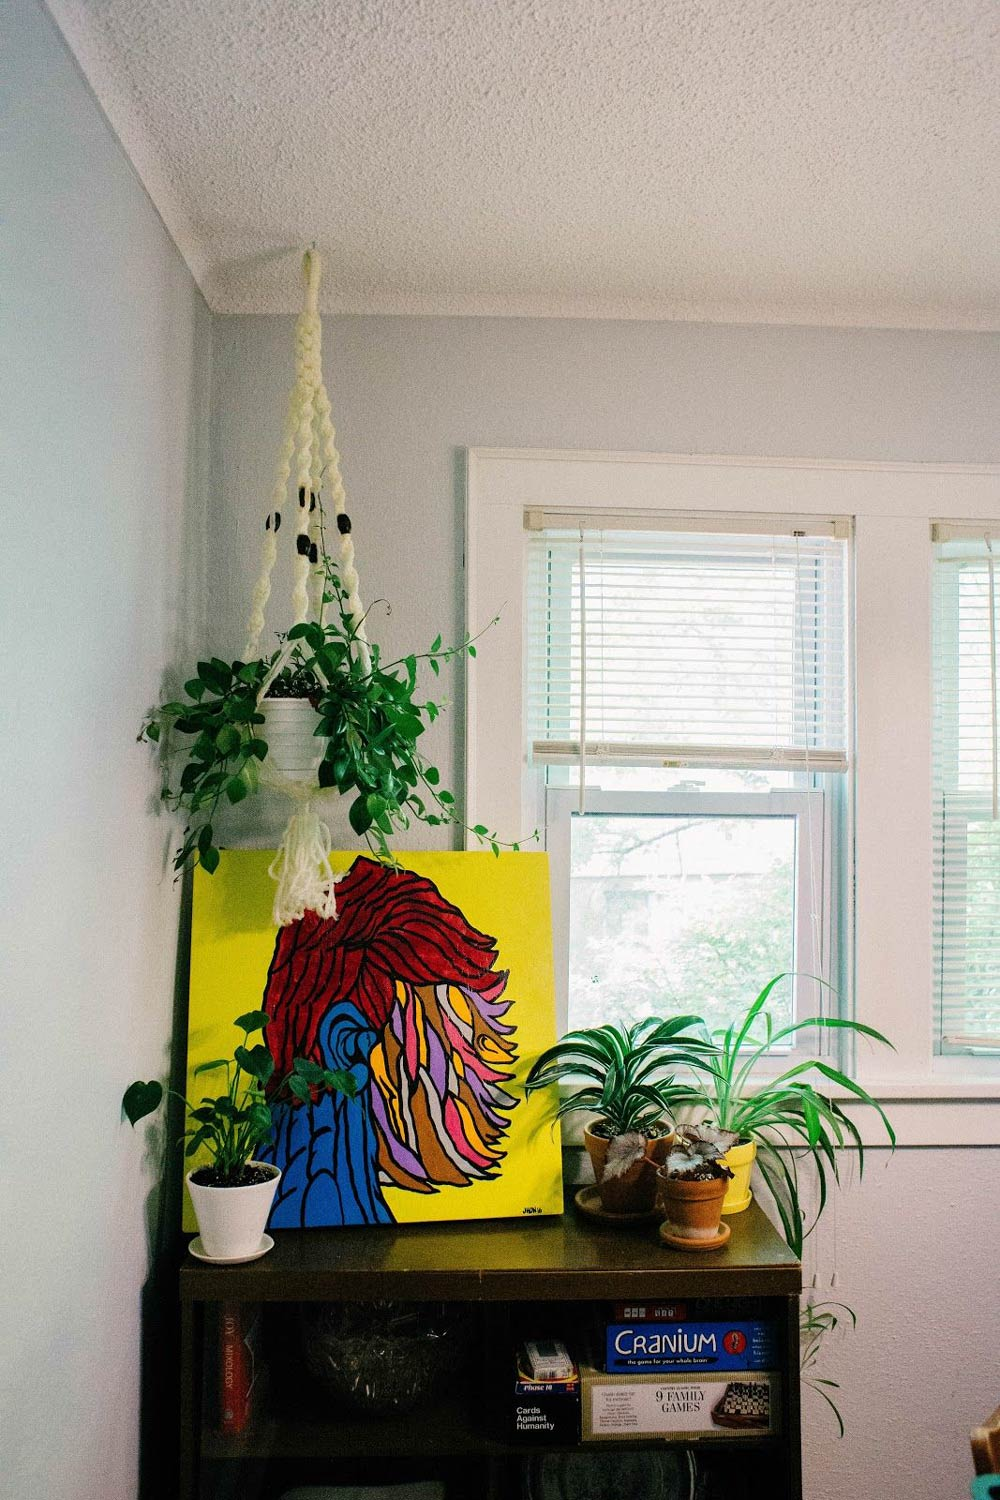 Hanging plant near dresser with art